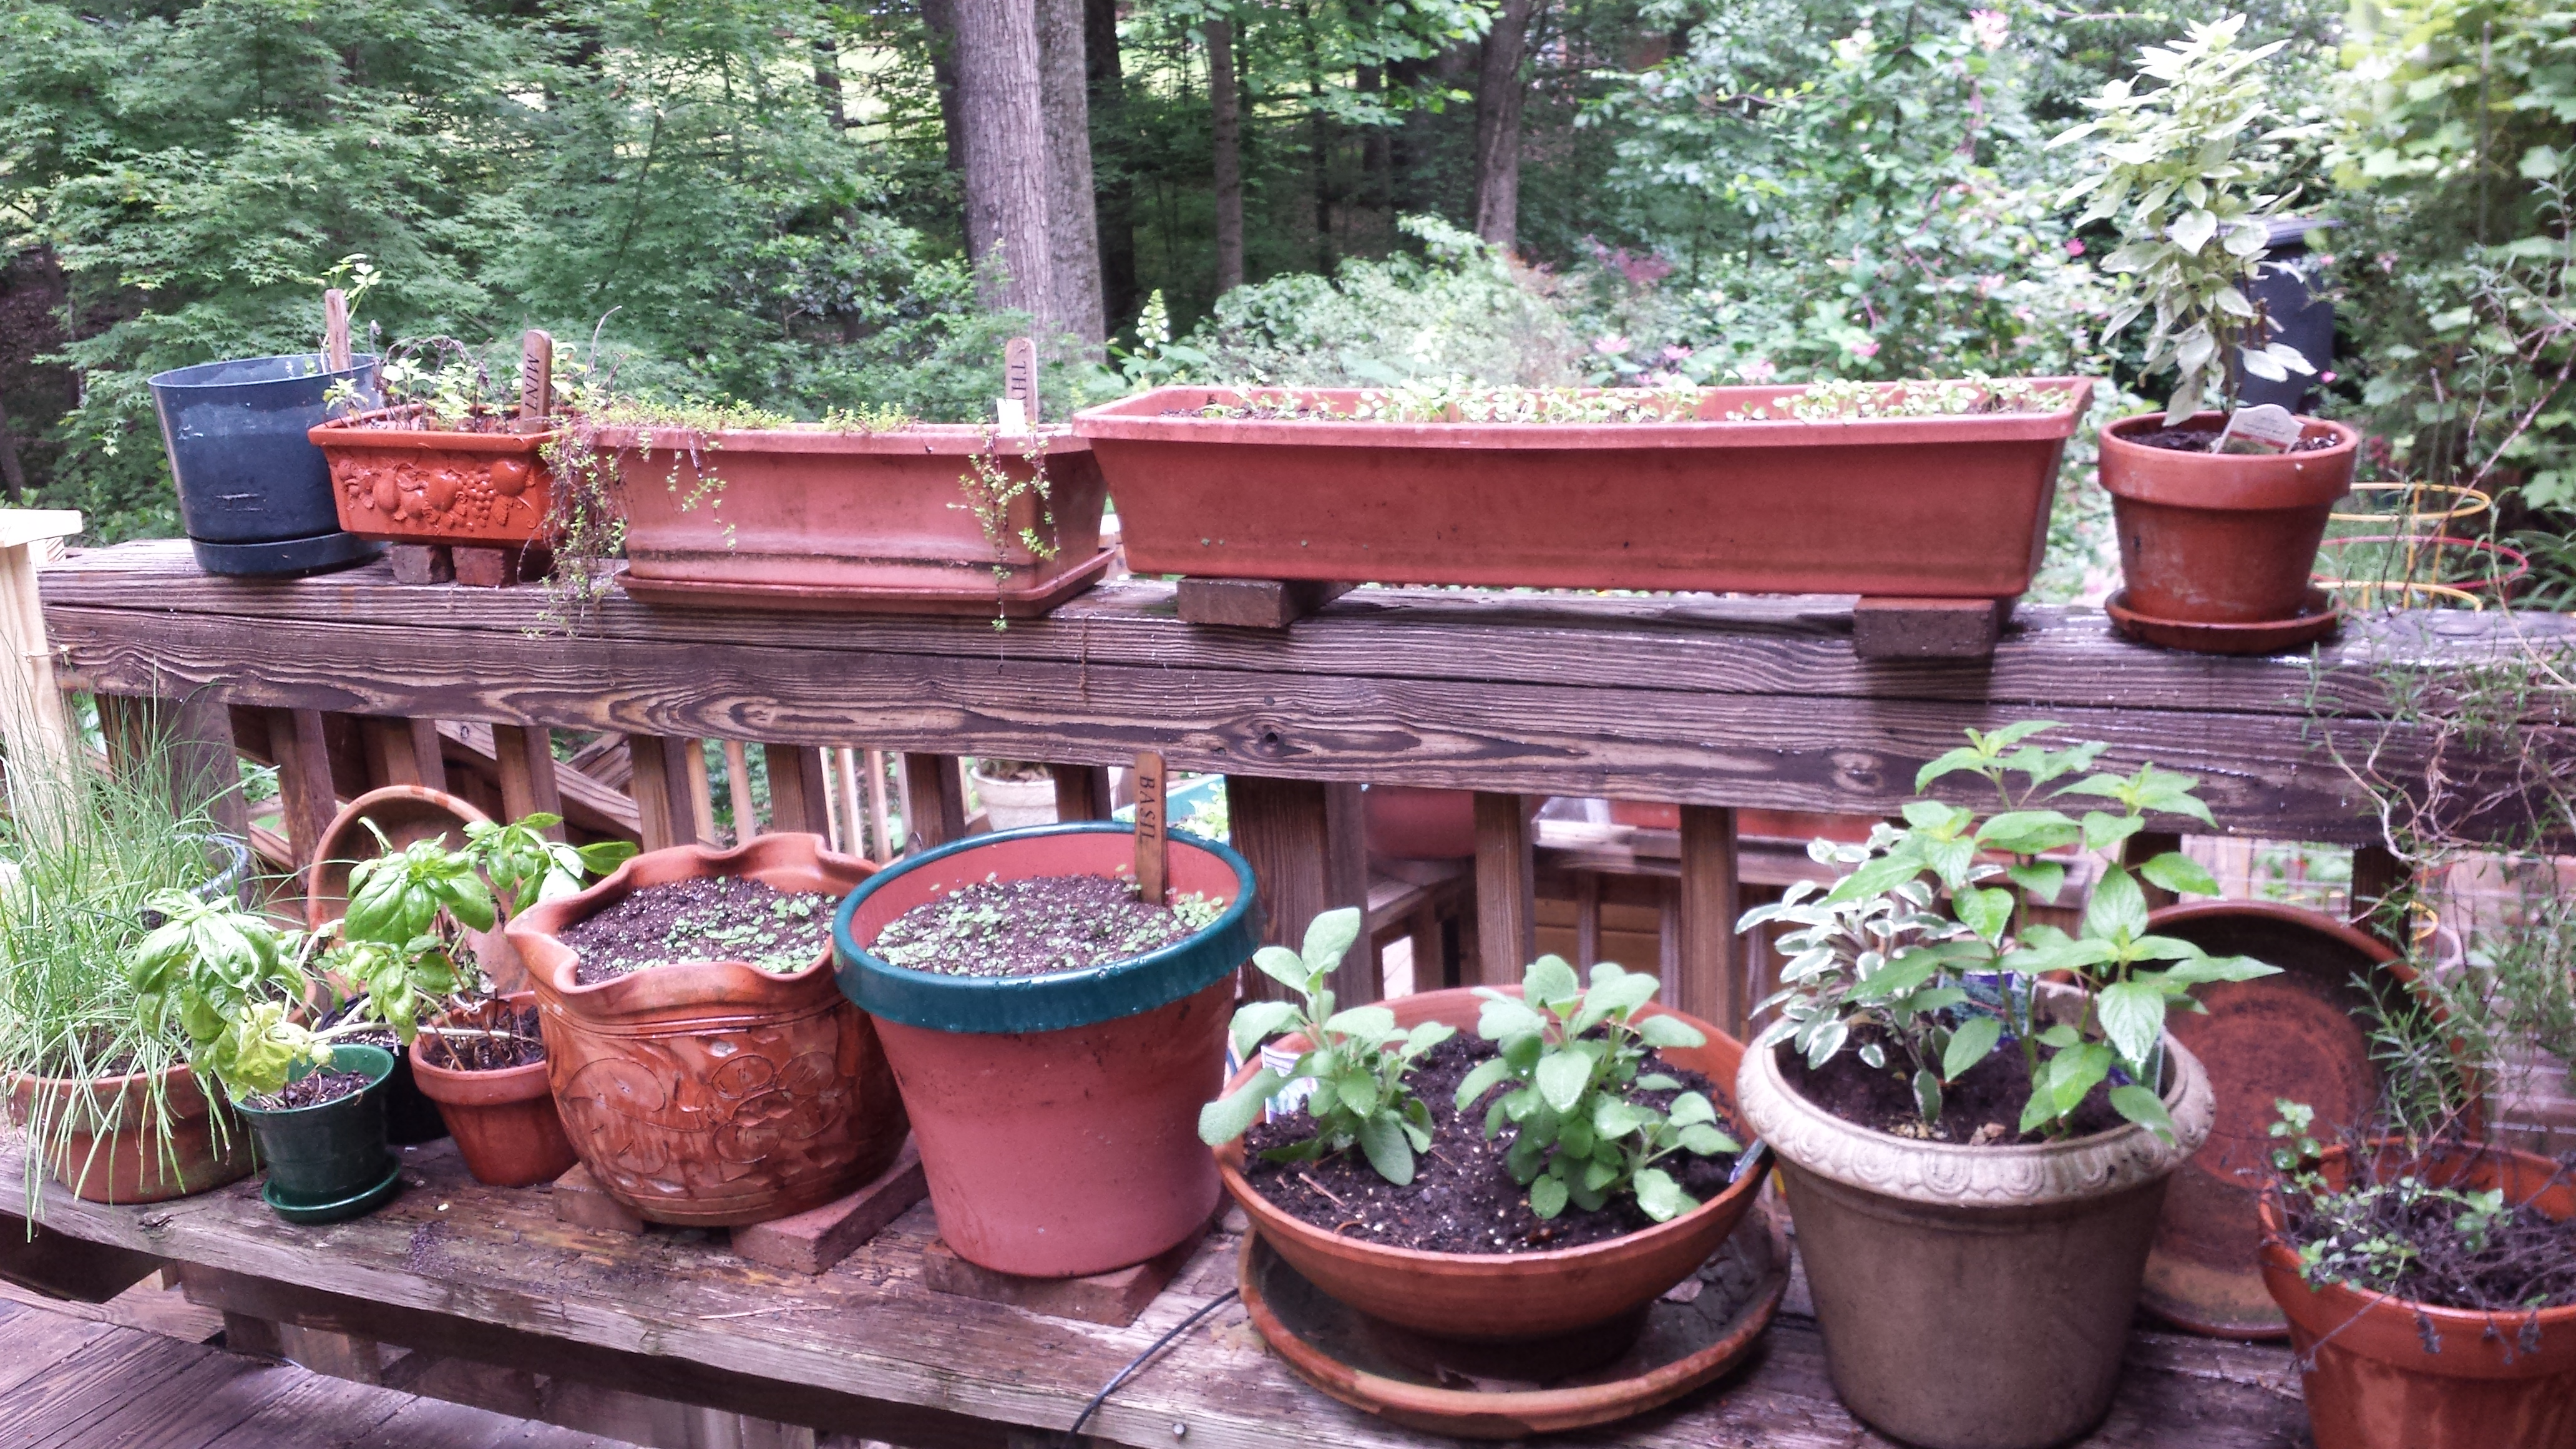 This year's potted herb garden on the upper deck in its infancy